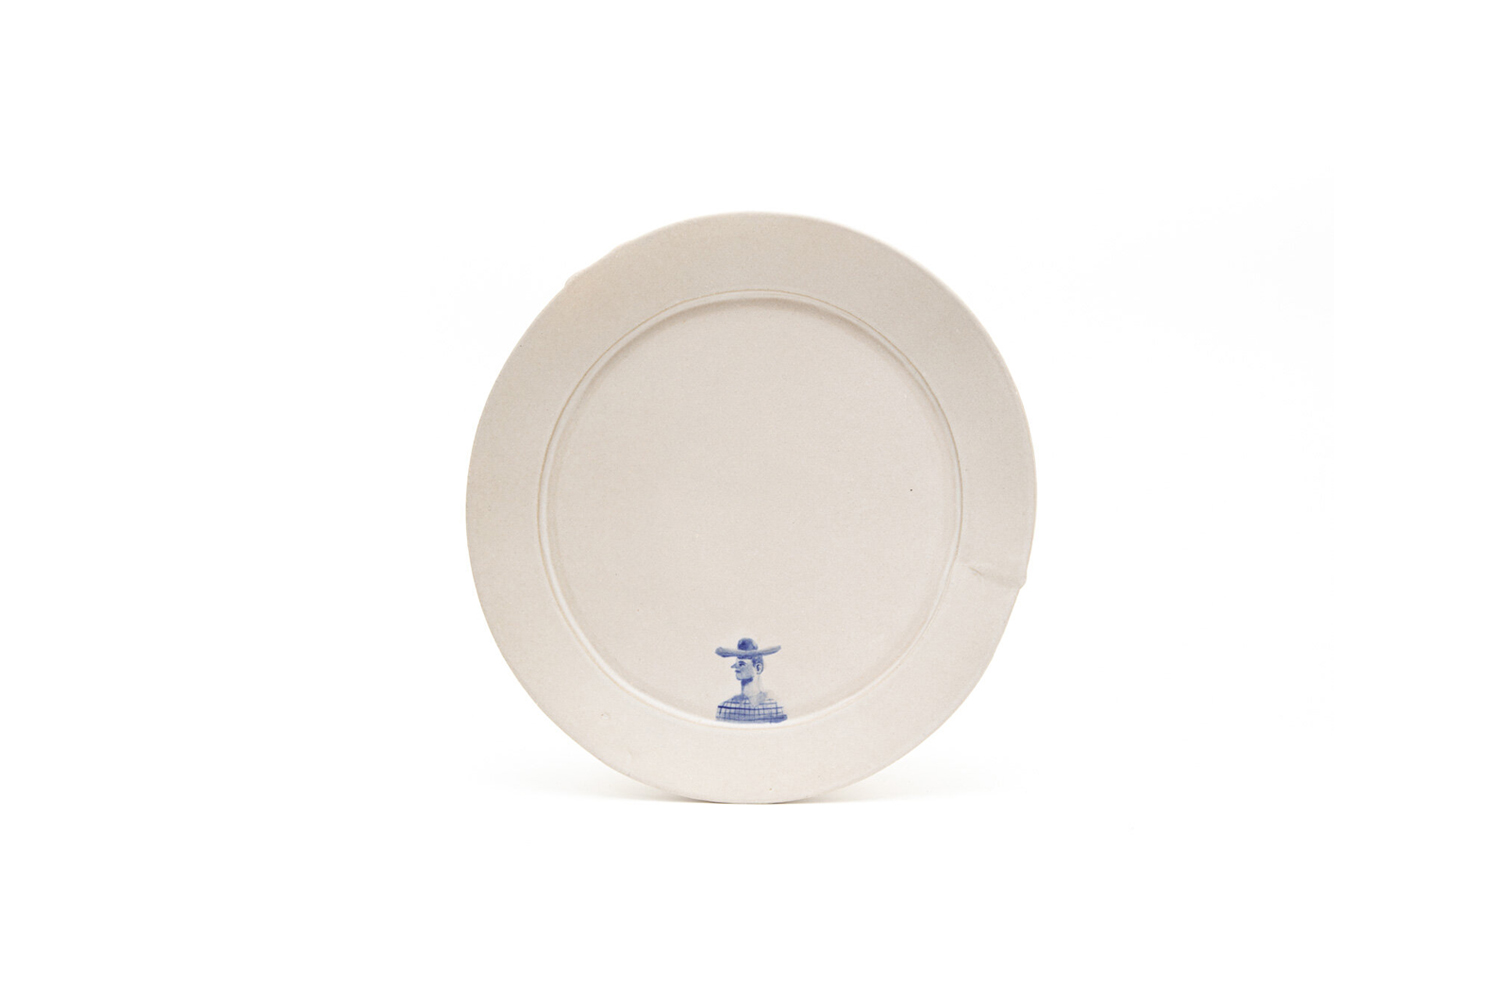 the bddw 9 inch plate 3\10, like other bddw ceramics, is handmade in philadelph 20